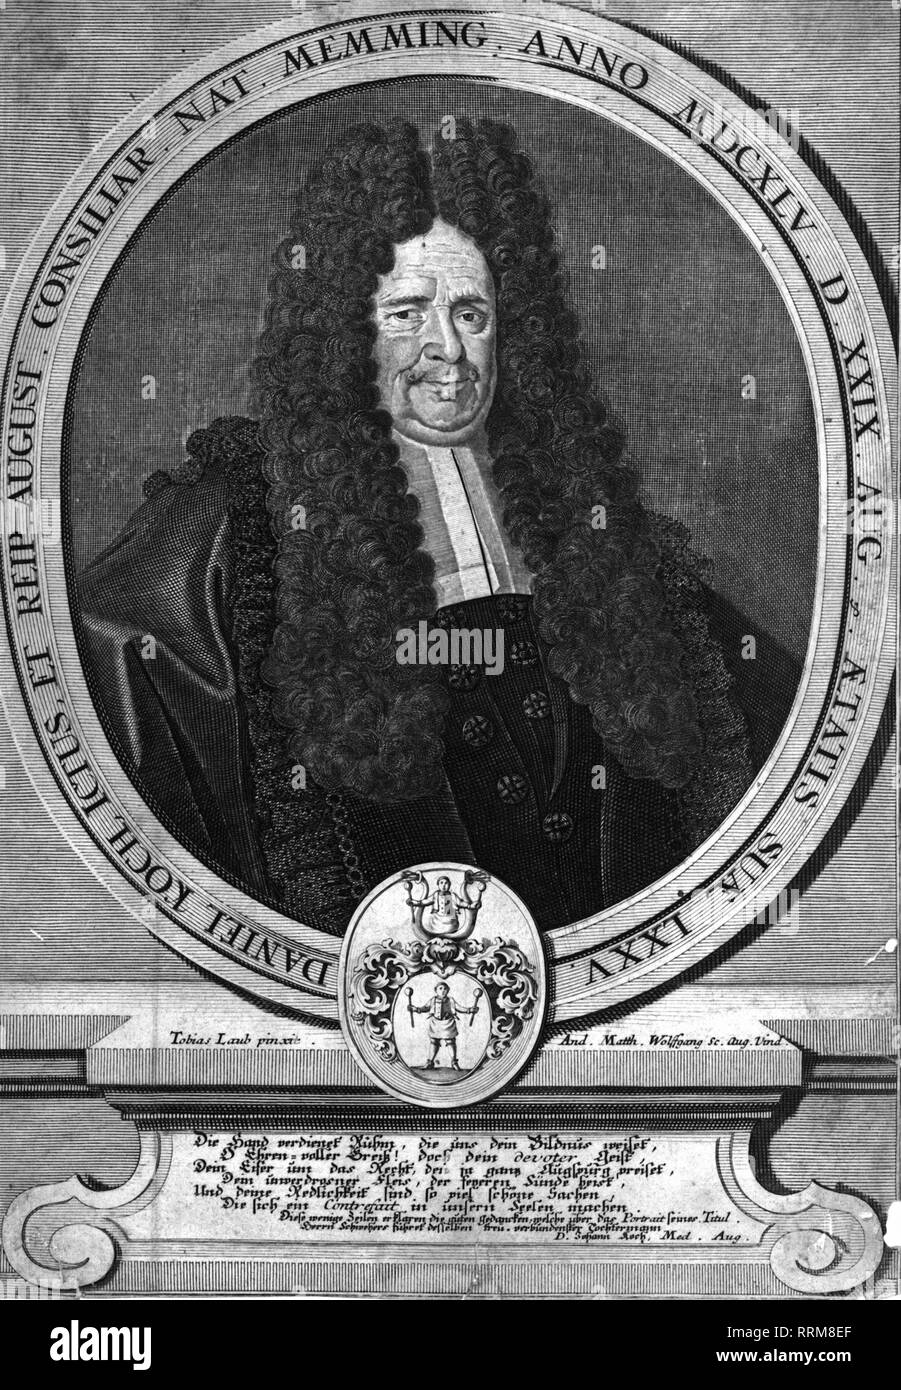 Koch, Daniel, 1645 - 1723, German lawyer/jurist, portrait, copper engraving by Andreas Matthaeus Wolfgang (1660 - 1736), after painting by Tobias Laub (1685 - 1761), 1720, Artist's Copyright has not to be cleared - Stock Image